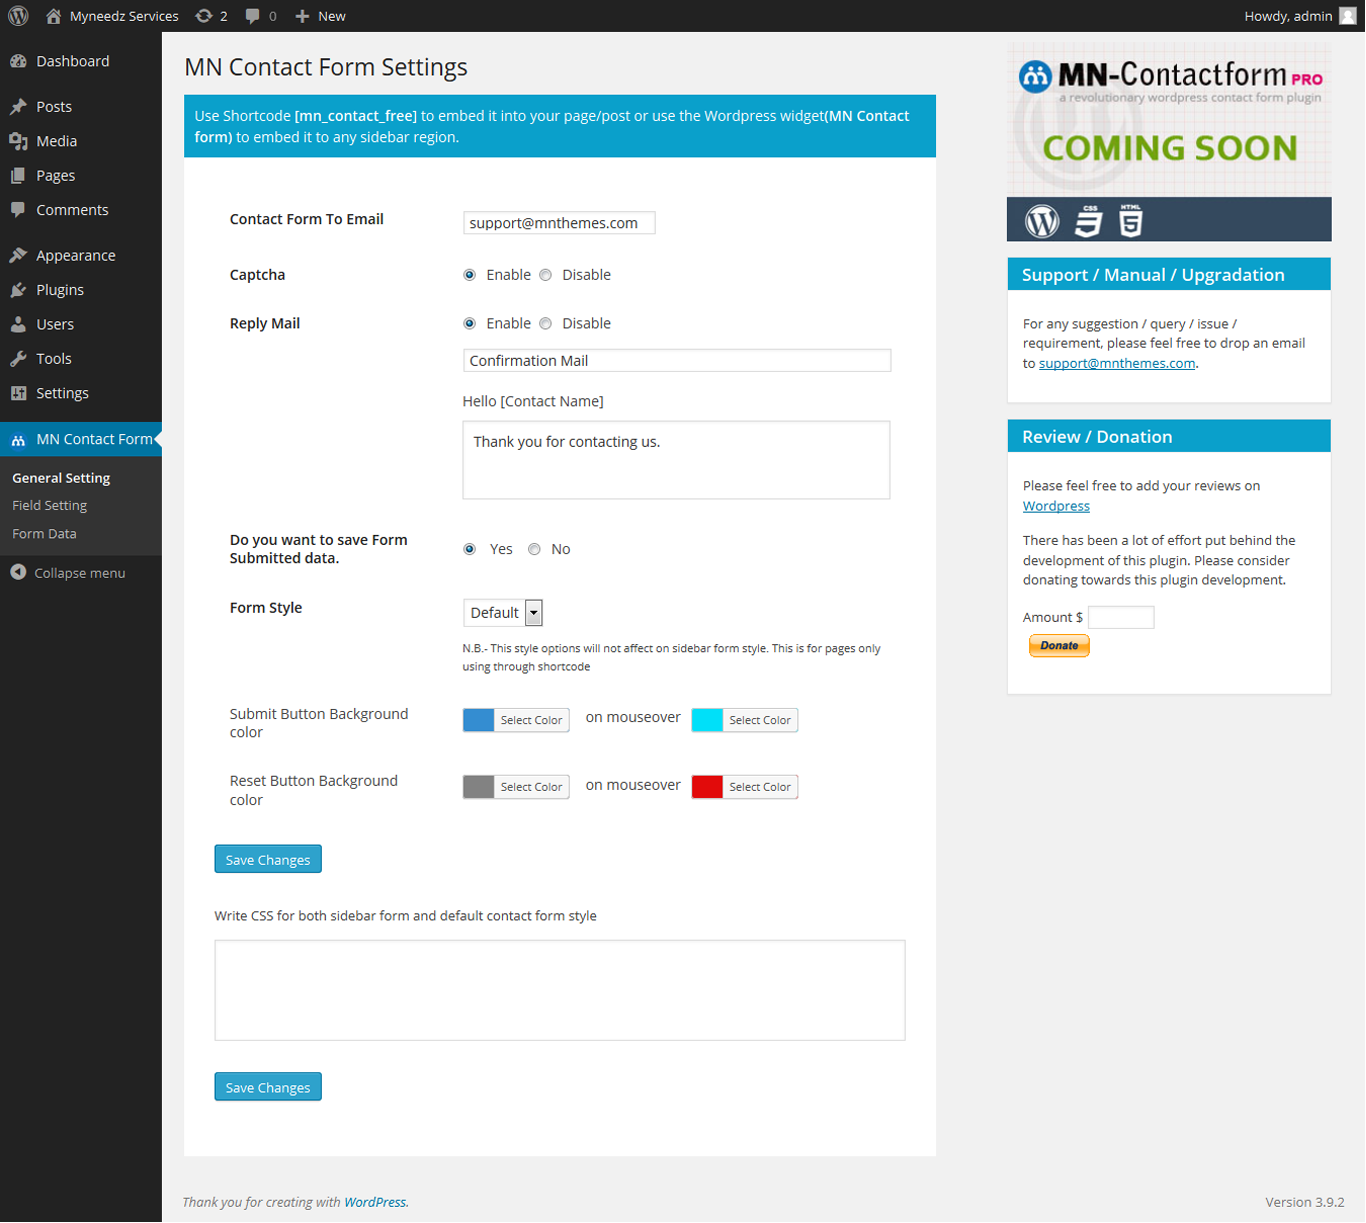 mn-contact-form screenshot 2